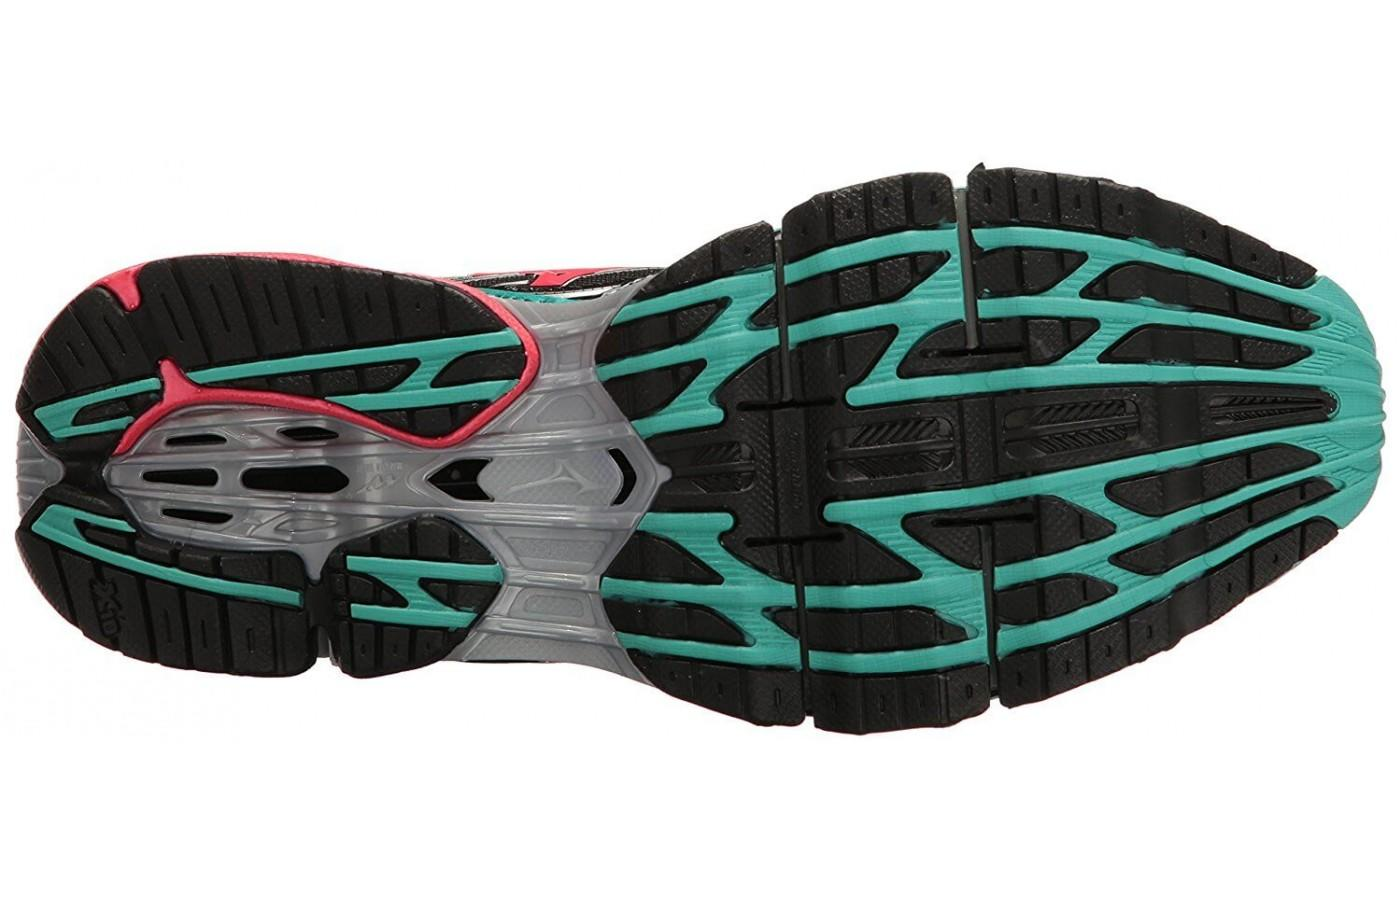 X10 rubber in the outsole provides durability and good stick.